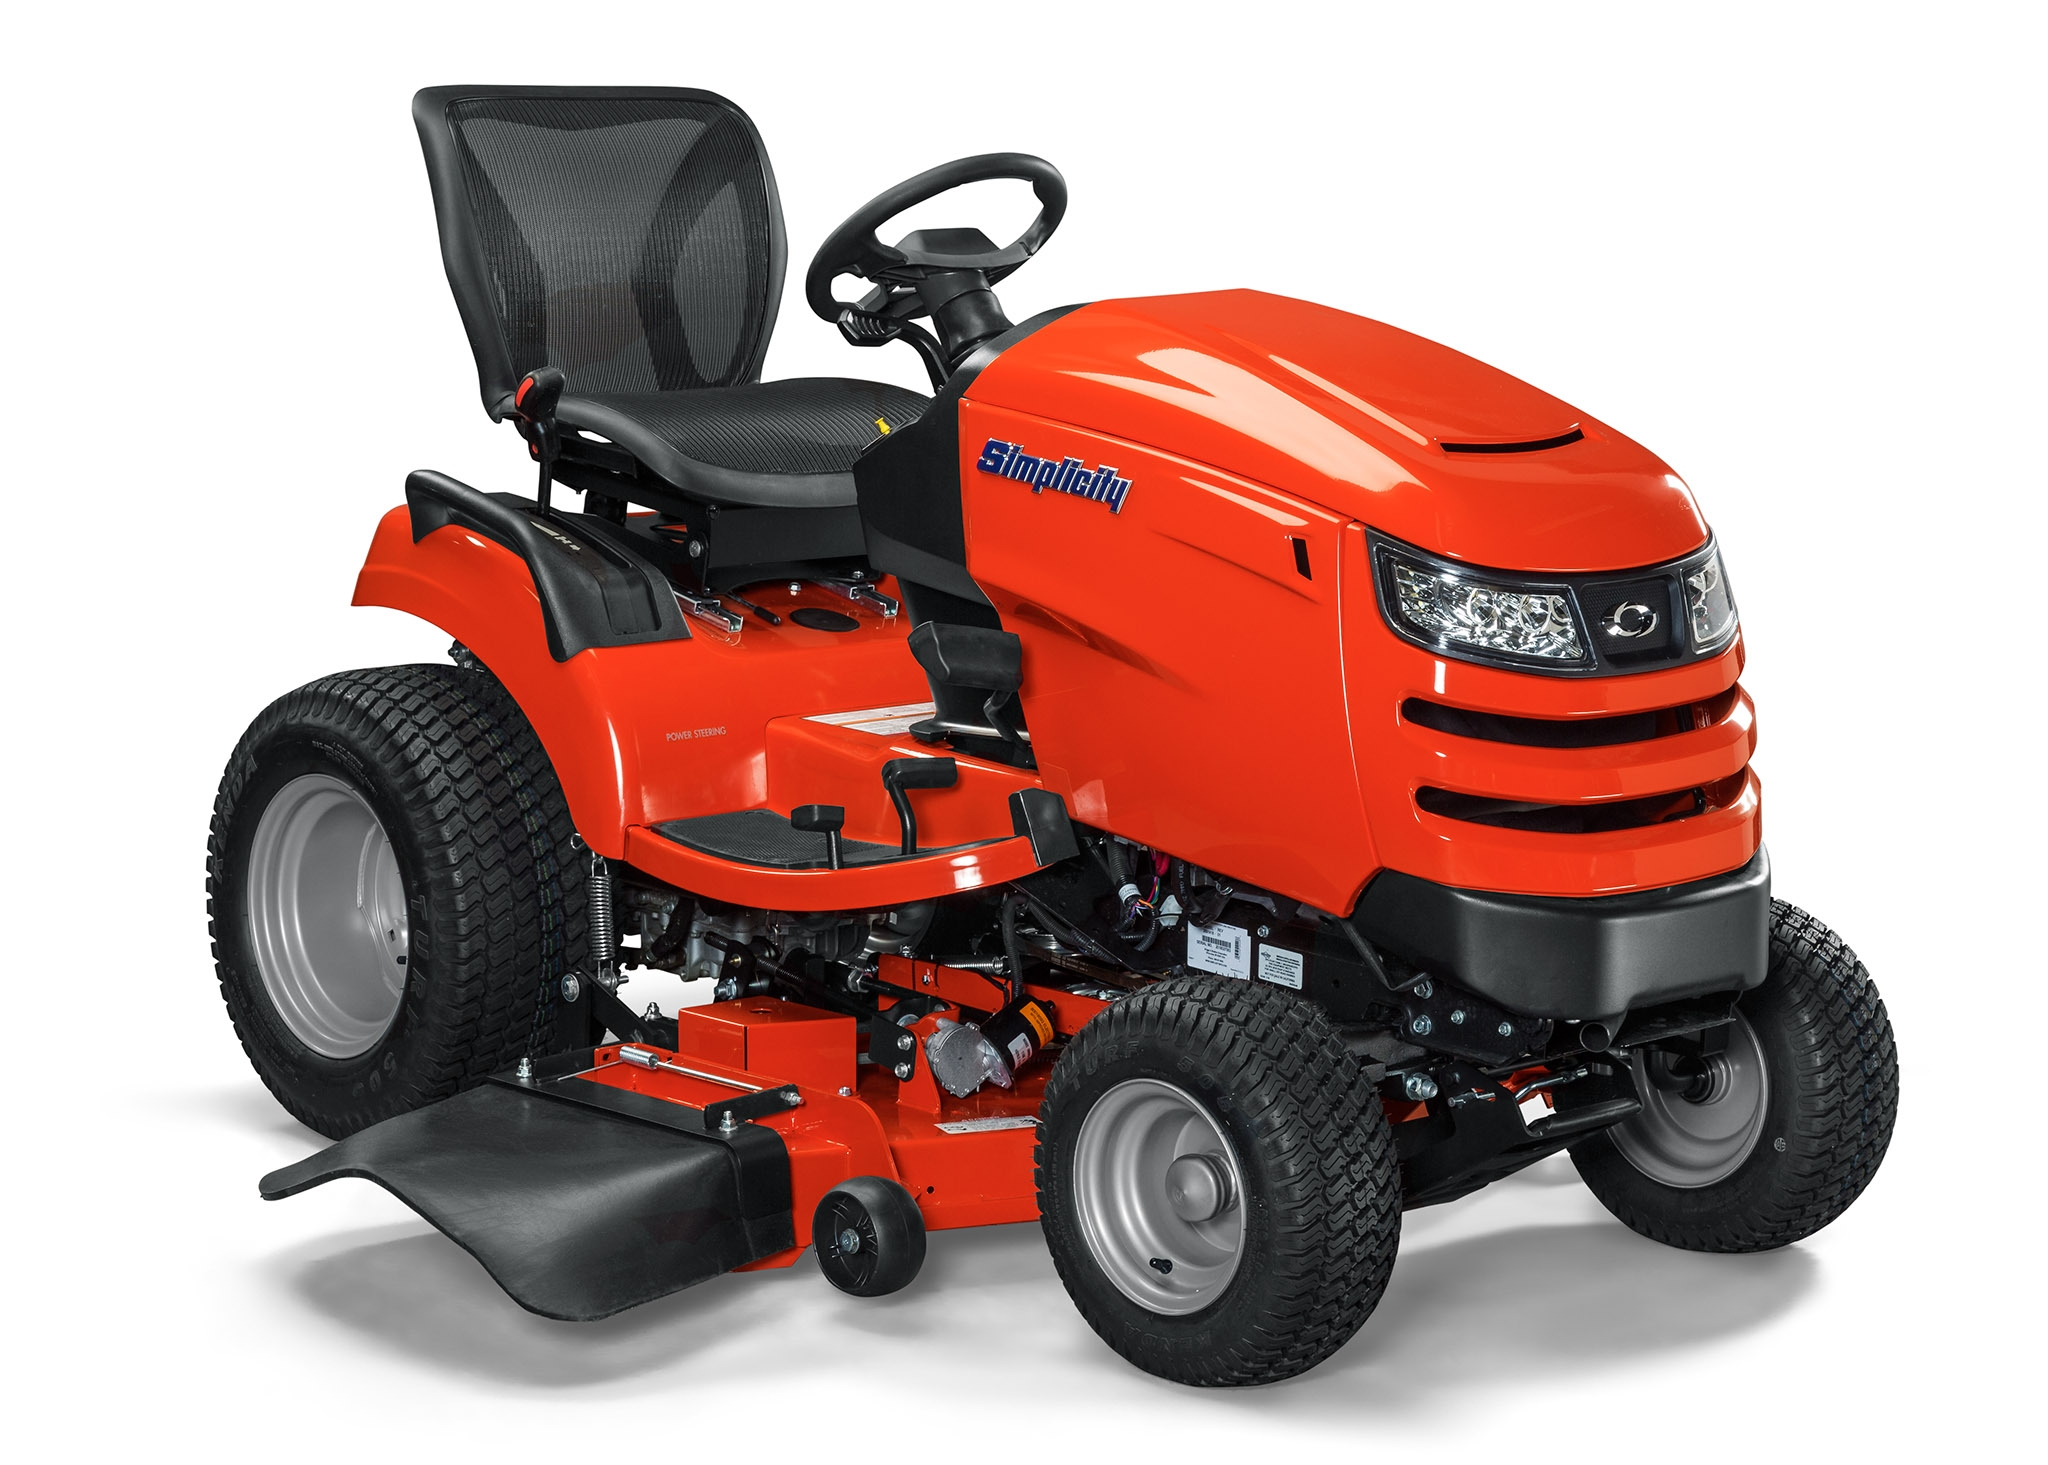 Simplicity Conquest Riding Lawn Mower, Briggs & Stratton, 25 hp, 52 in